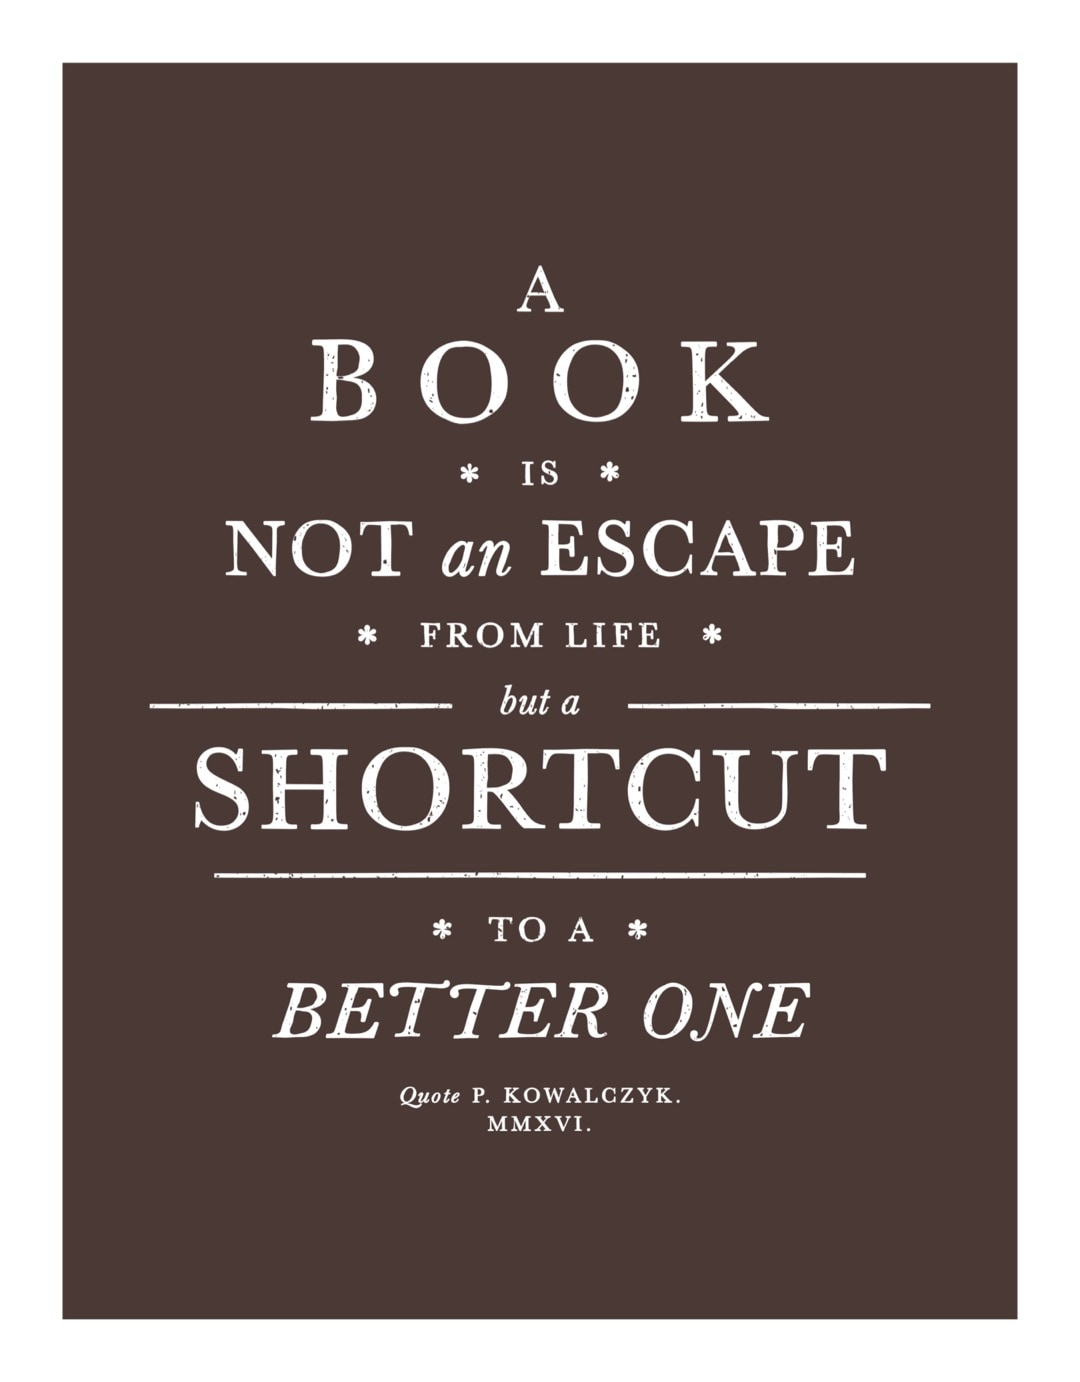 A book is a shortcut to a better life - best read posters